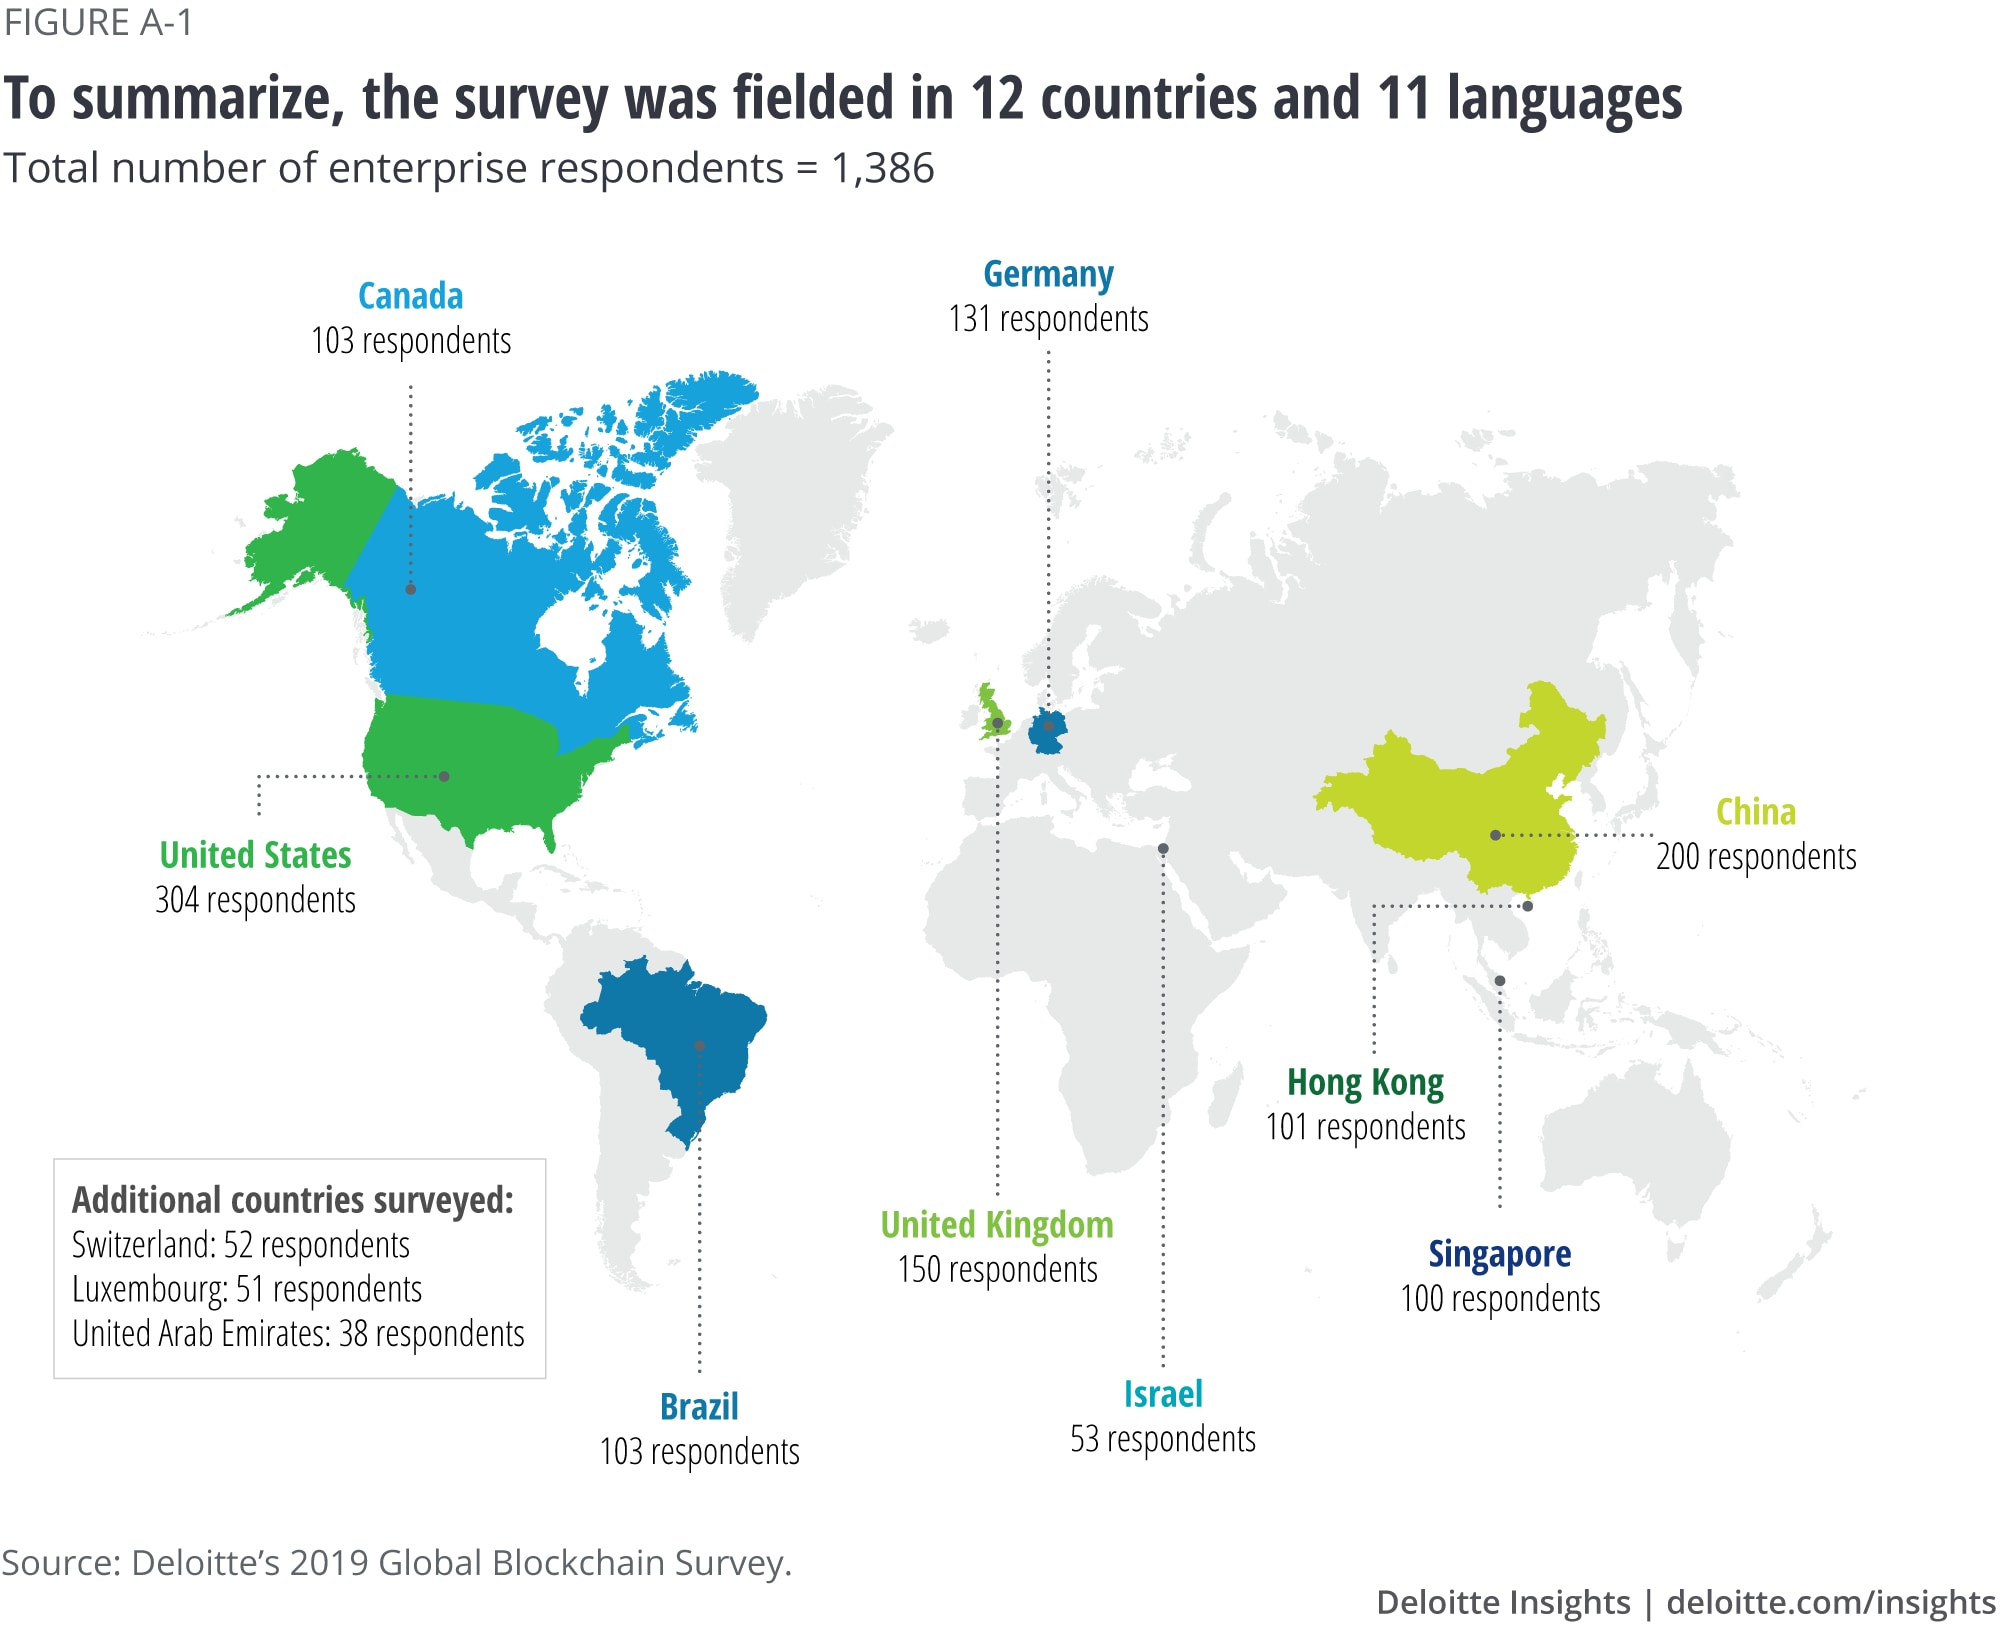 To summarize, the survey was fielded in 12 countries and 11 languages